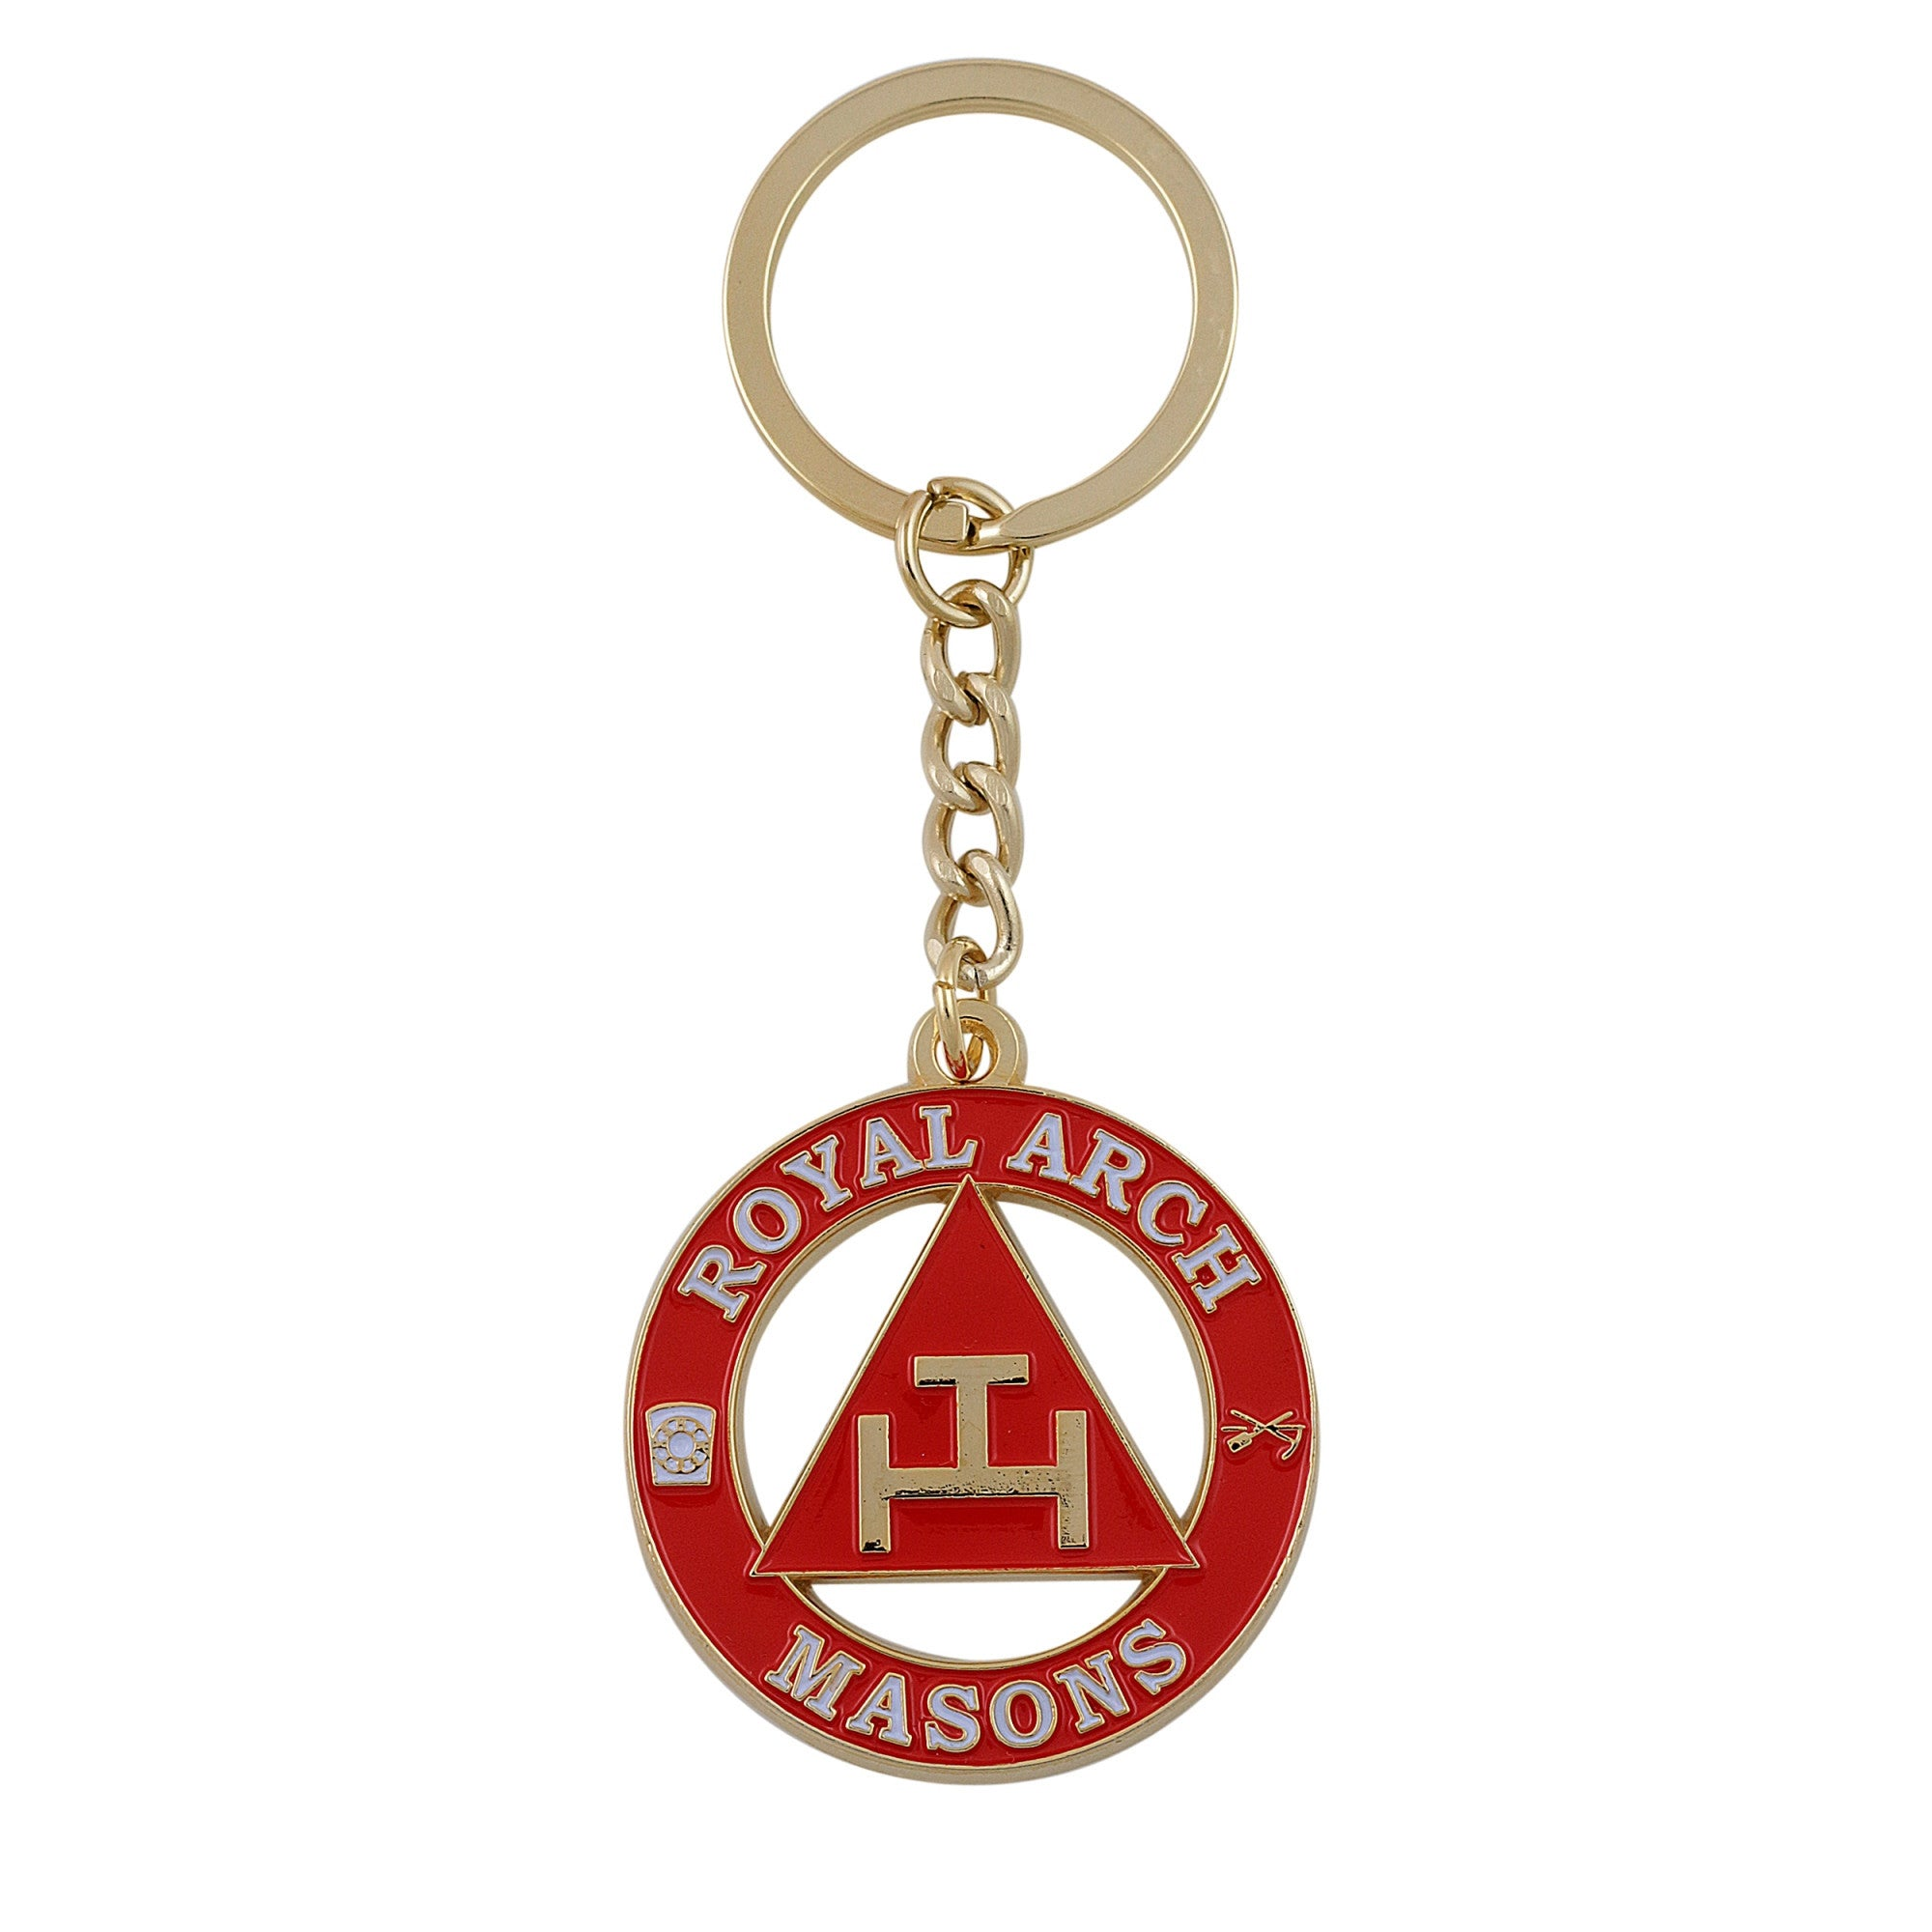 Royal Arch Masonic Key Chain (York Rite - Red House)